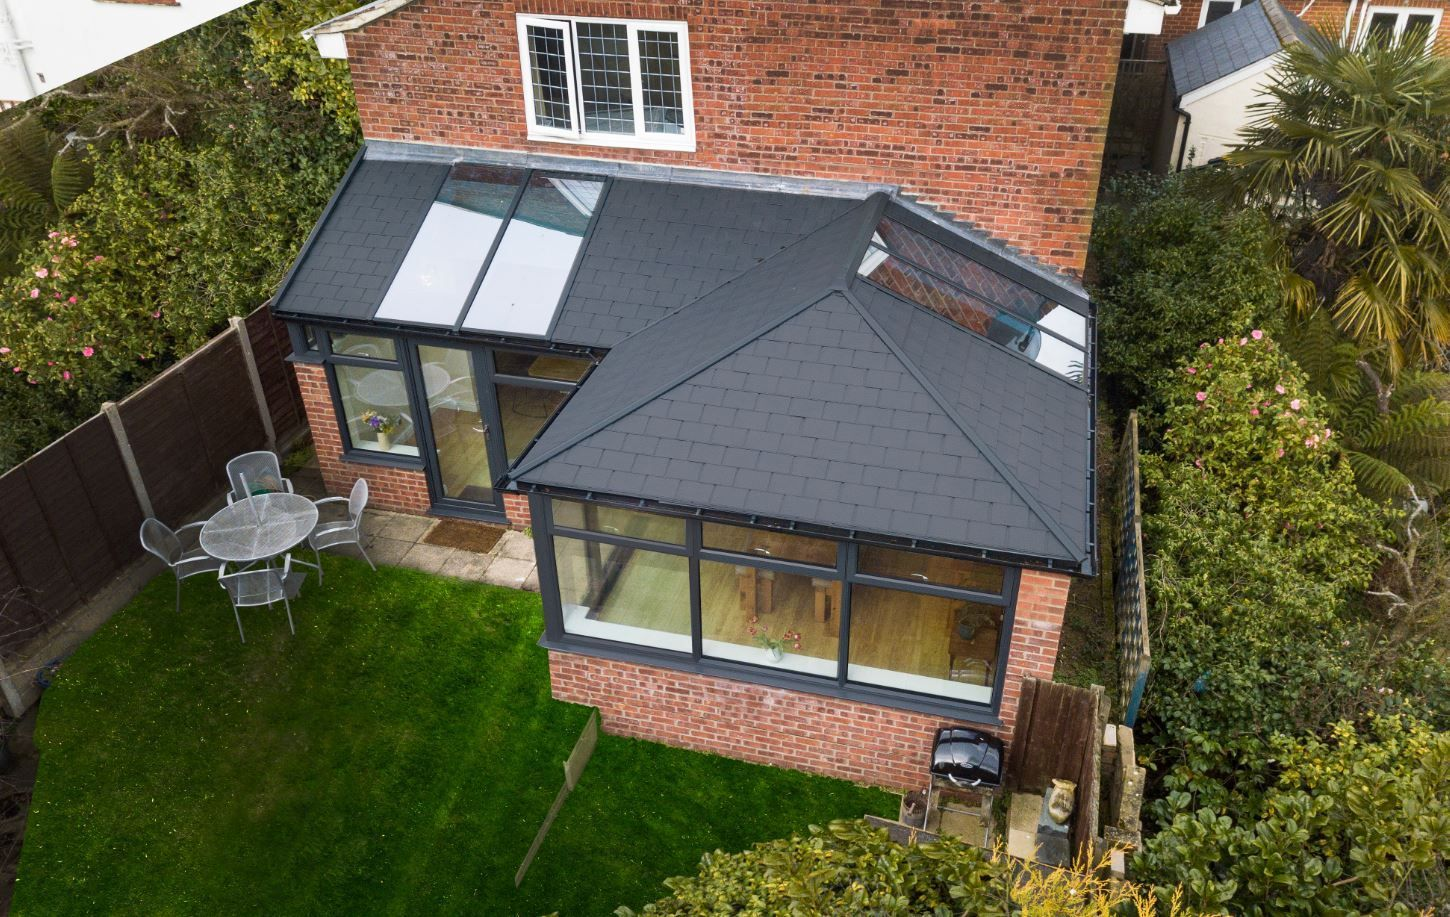 Tiled Conservatory Roof Prices Homeextensions If You Would Like A Price For A Tiled Conse Tiled Conservatory Roof House Extension Design House Extension Plans